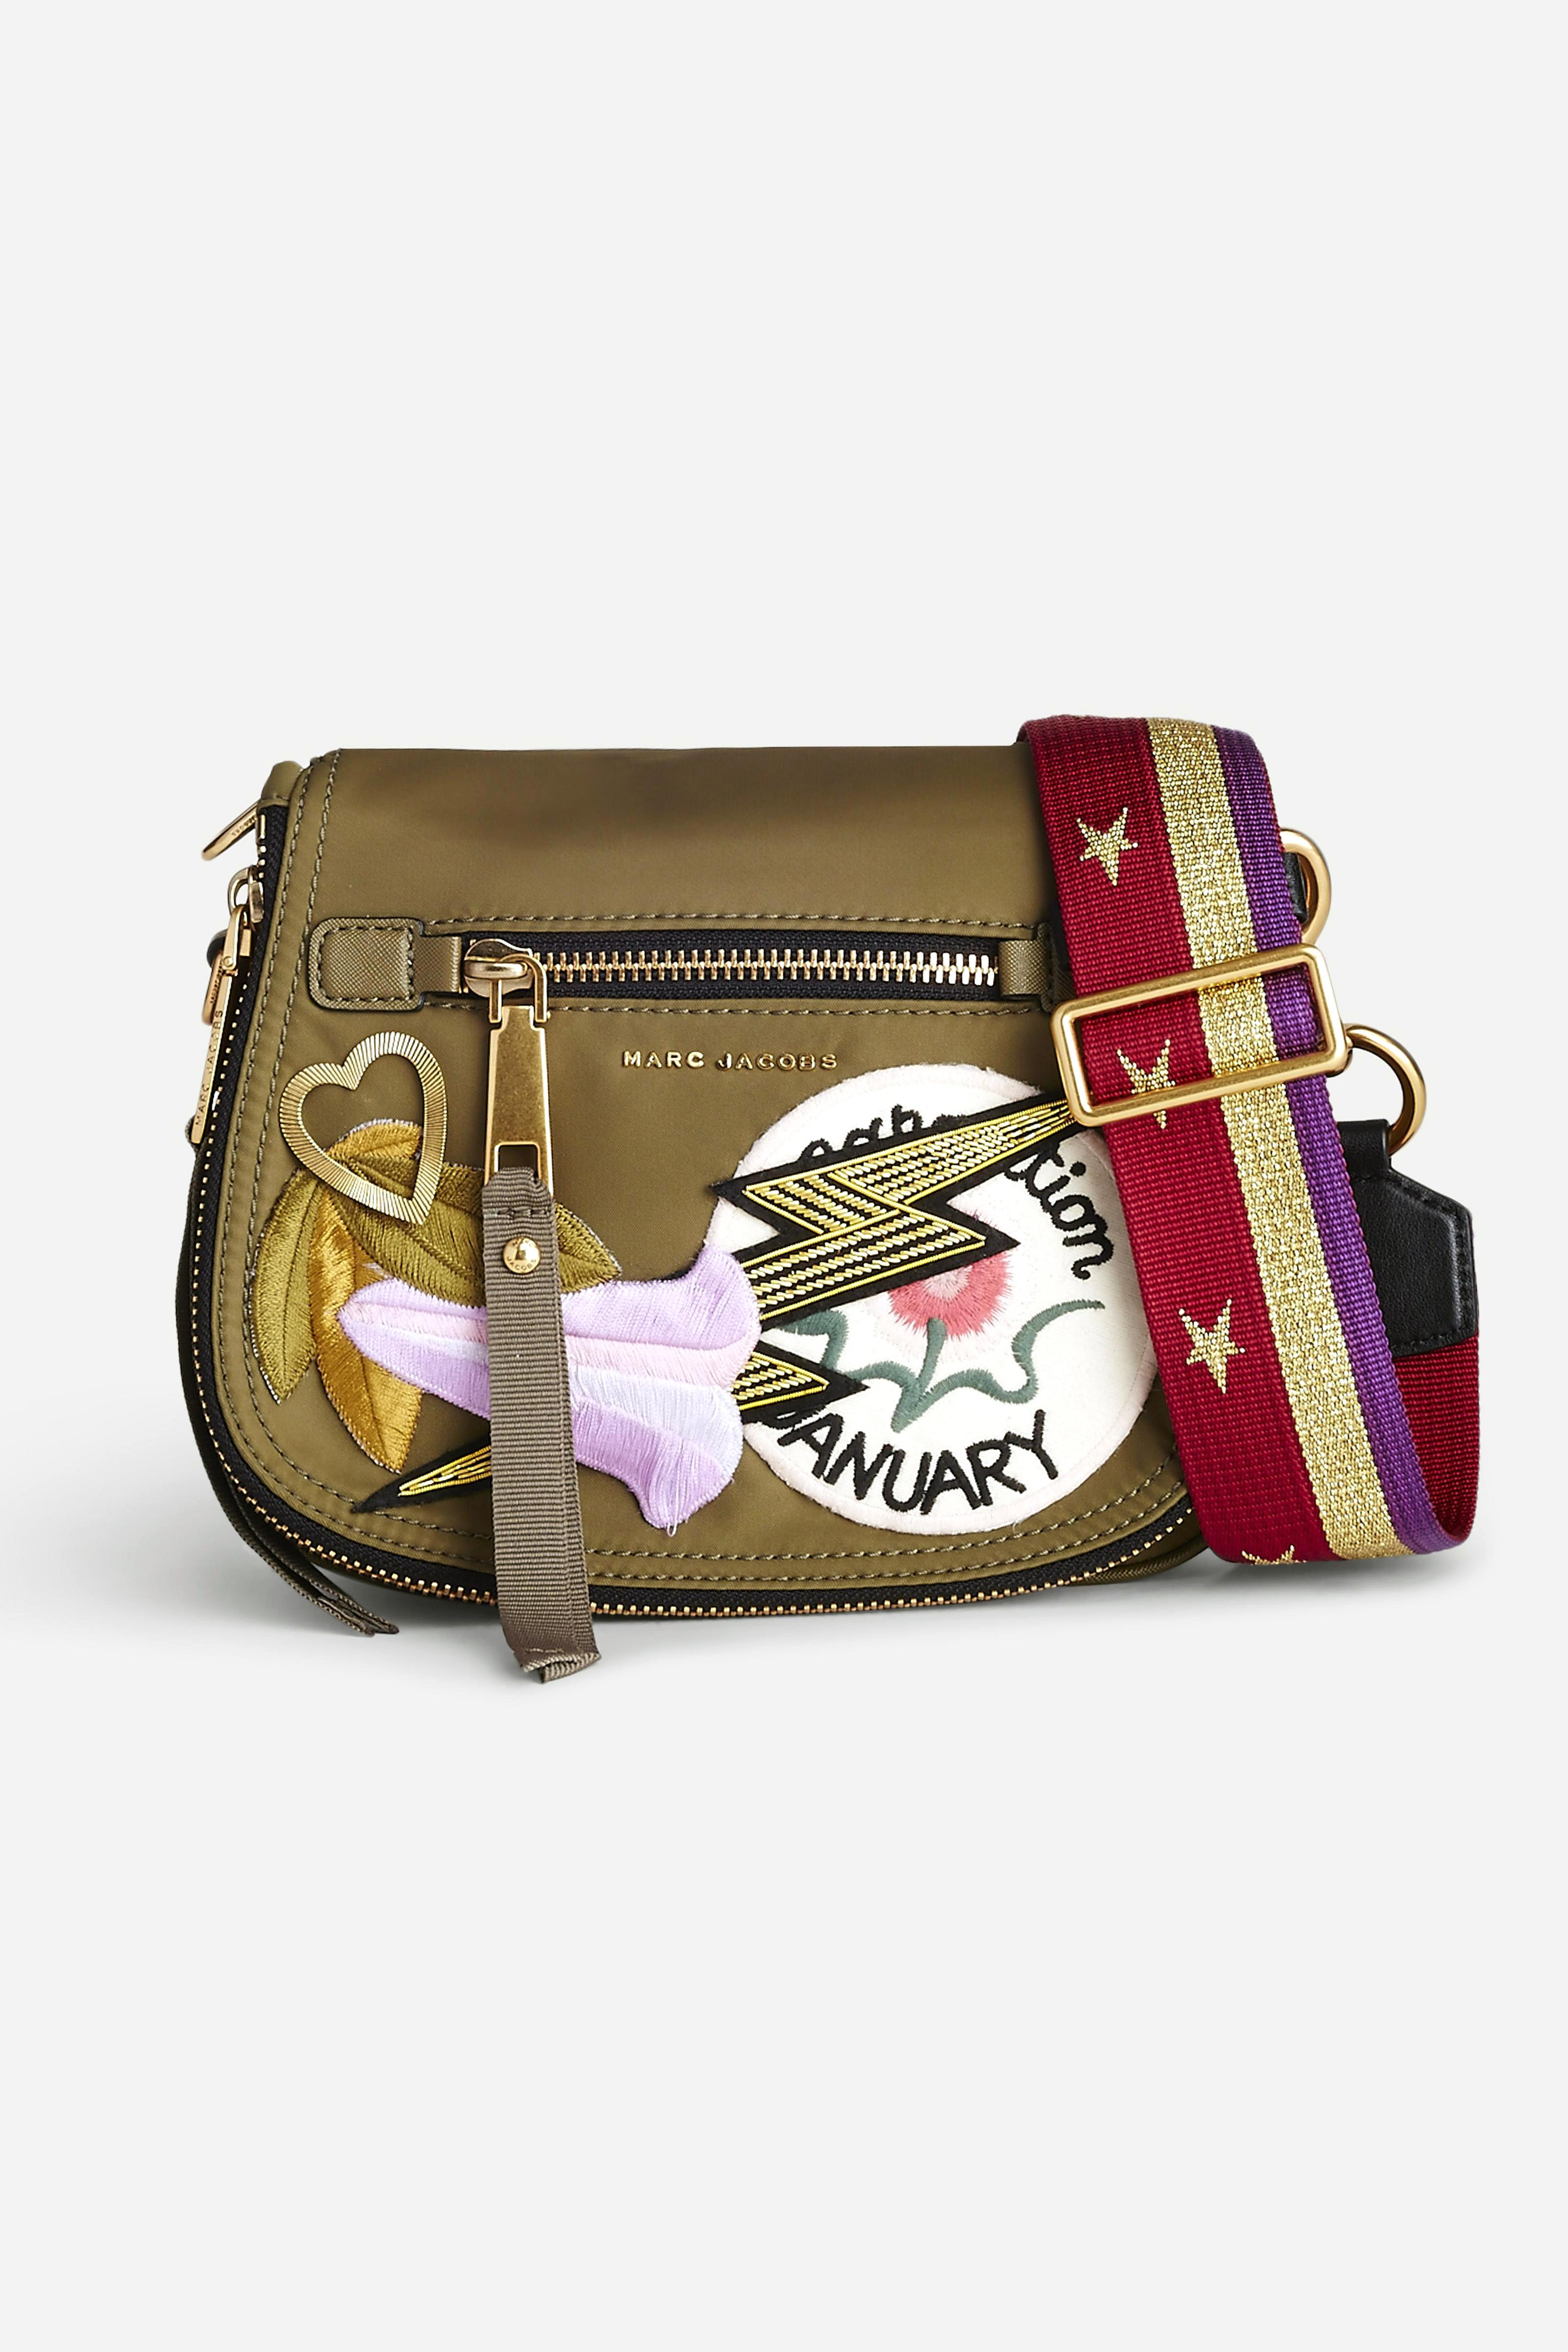 Marc Jacobs 18 - Nylon Patchwork Small Nomad - Military